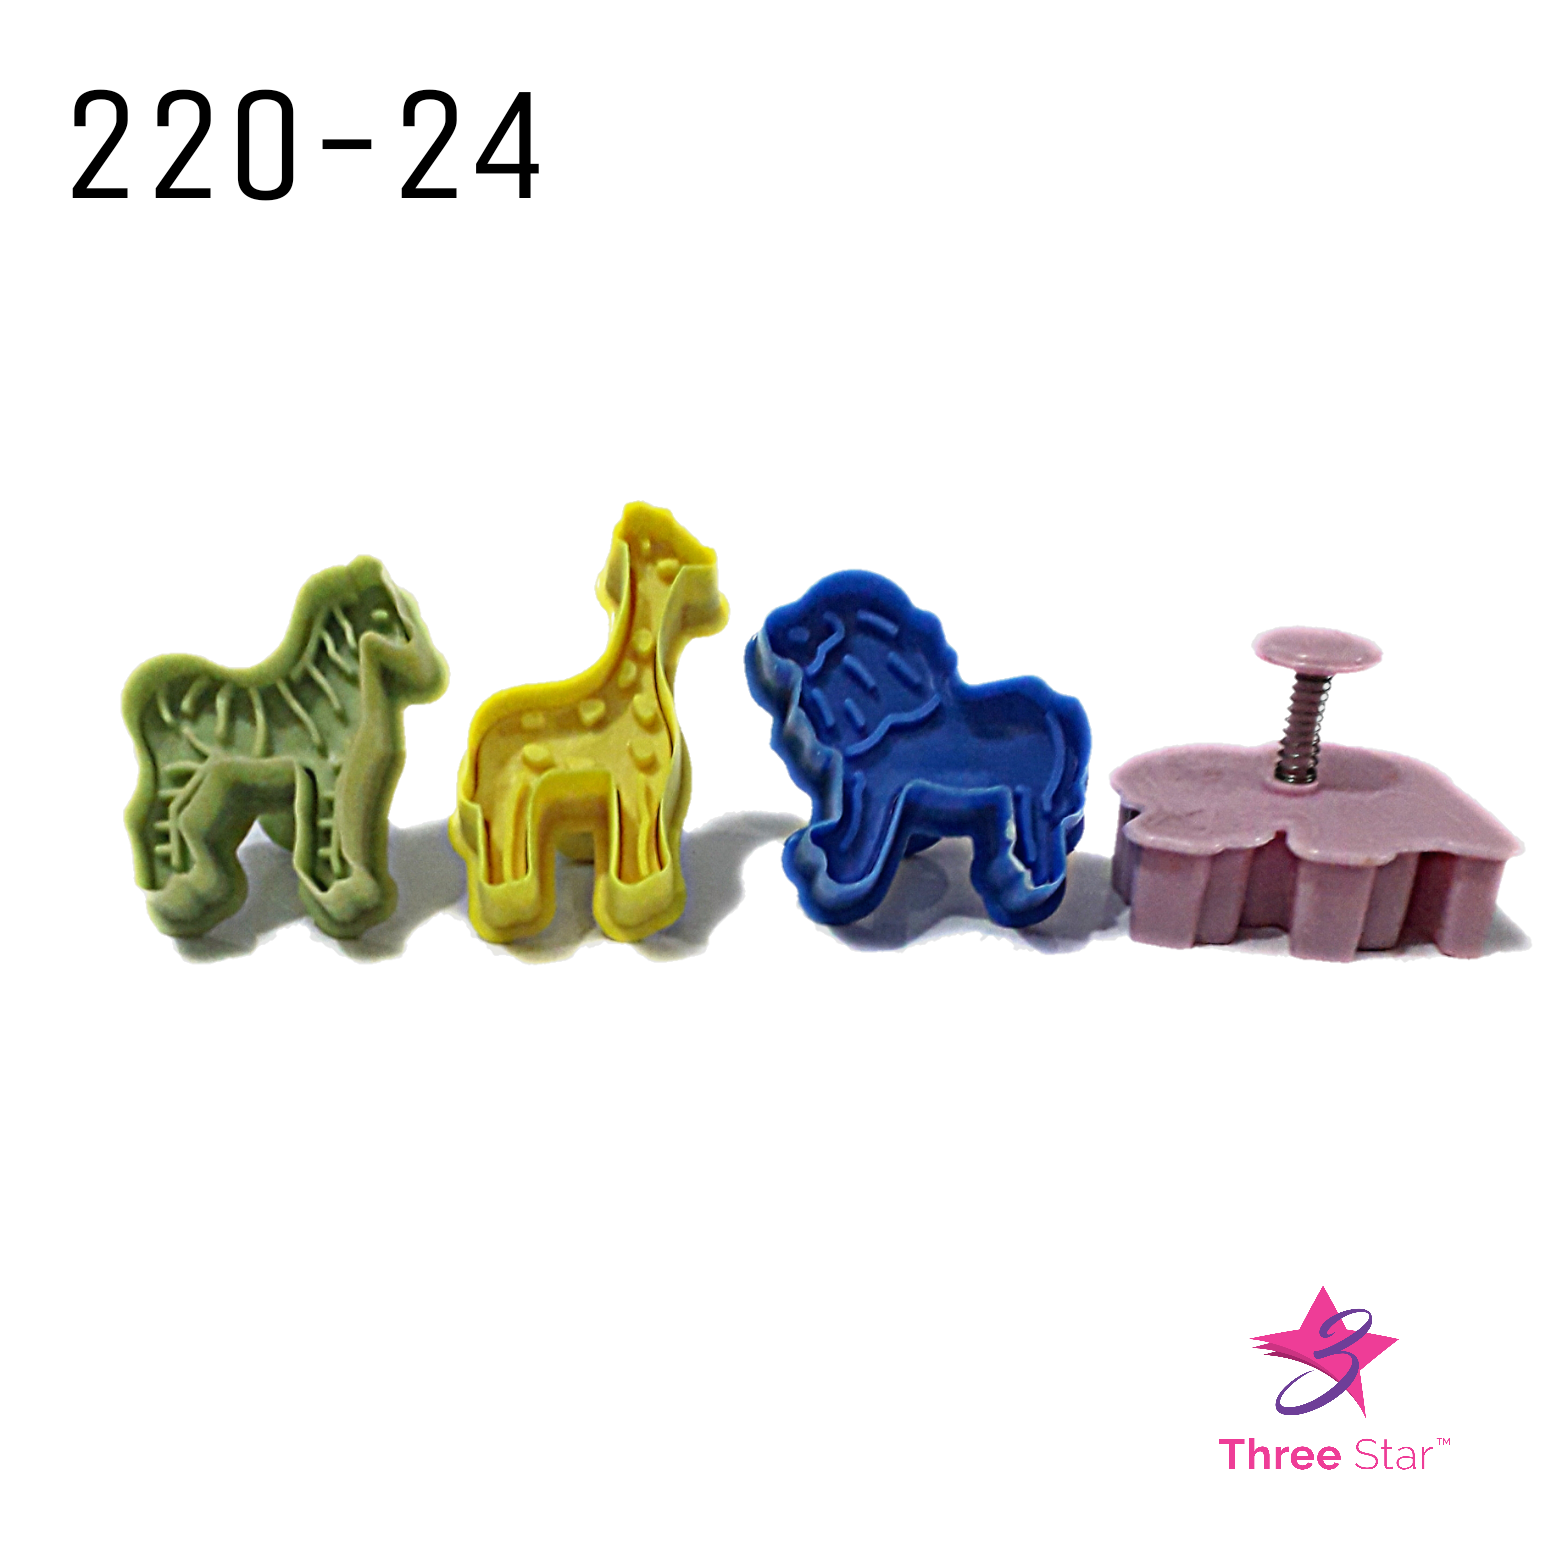 ZOO SAFARI ANIMAL PLUNGER CUTTERS 4 PCS